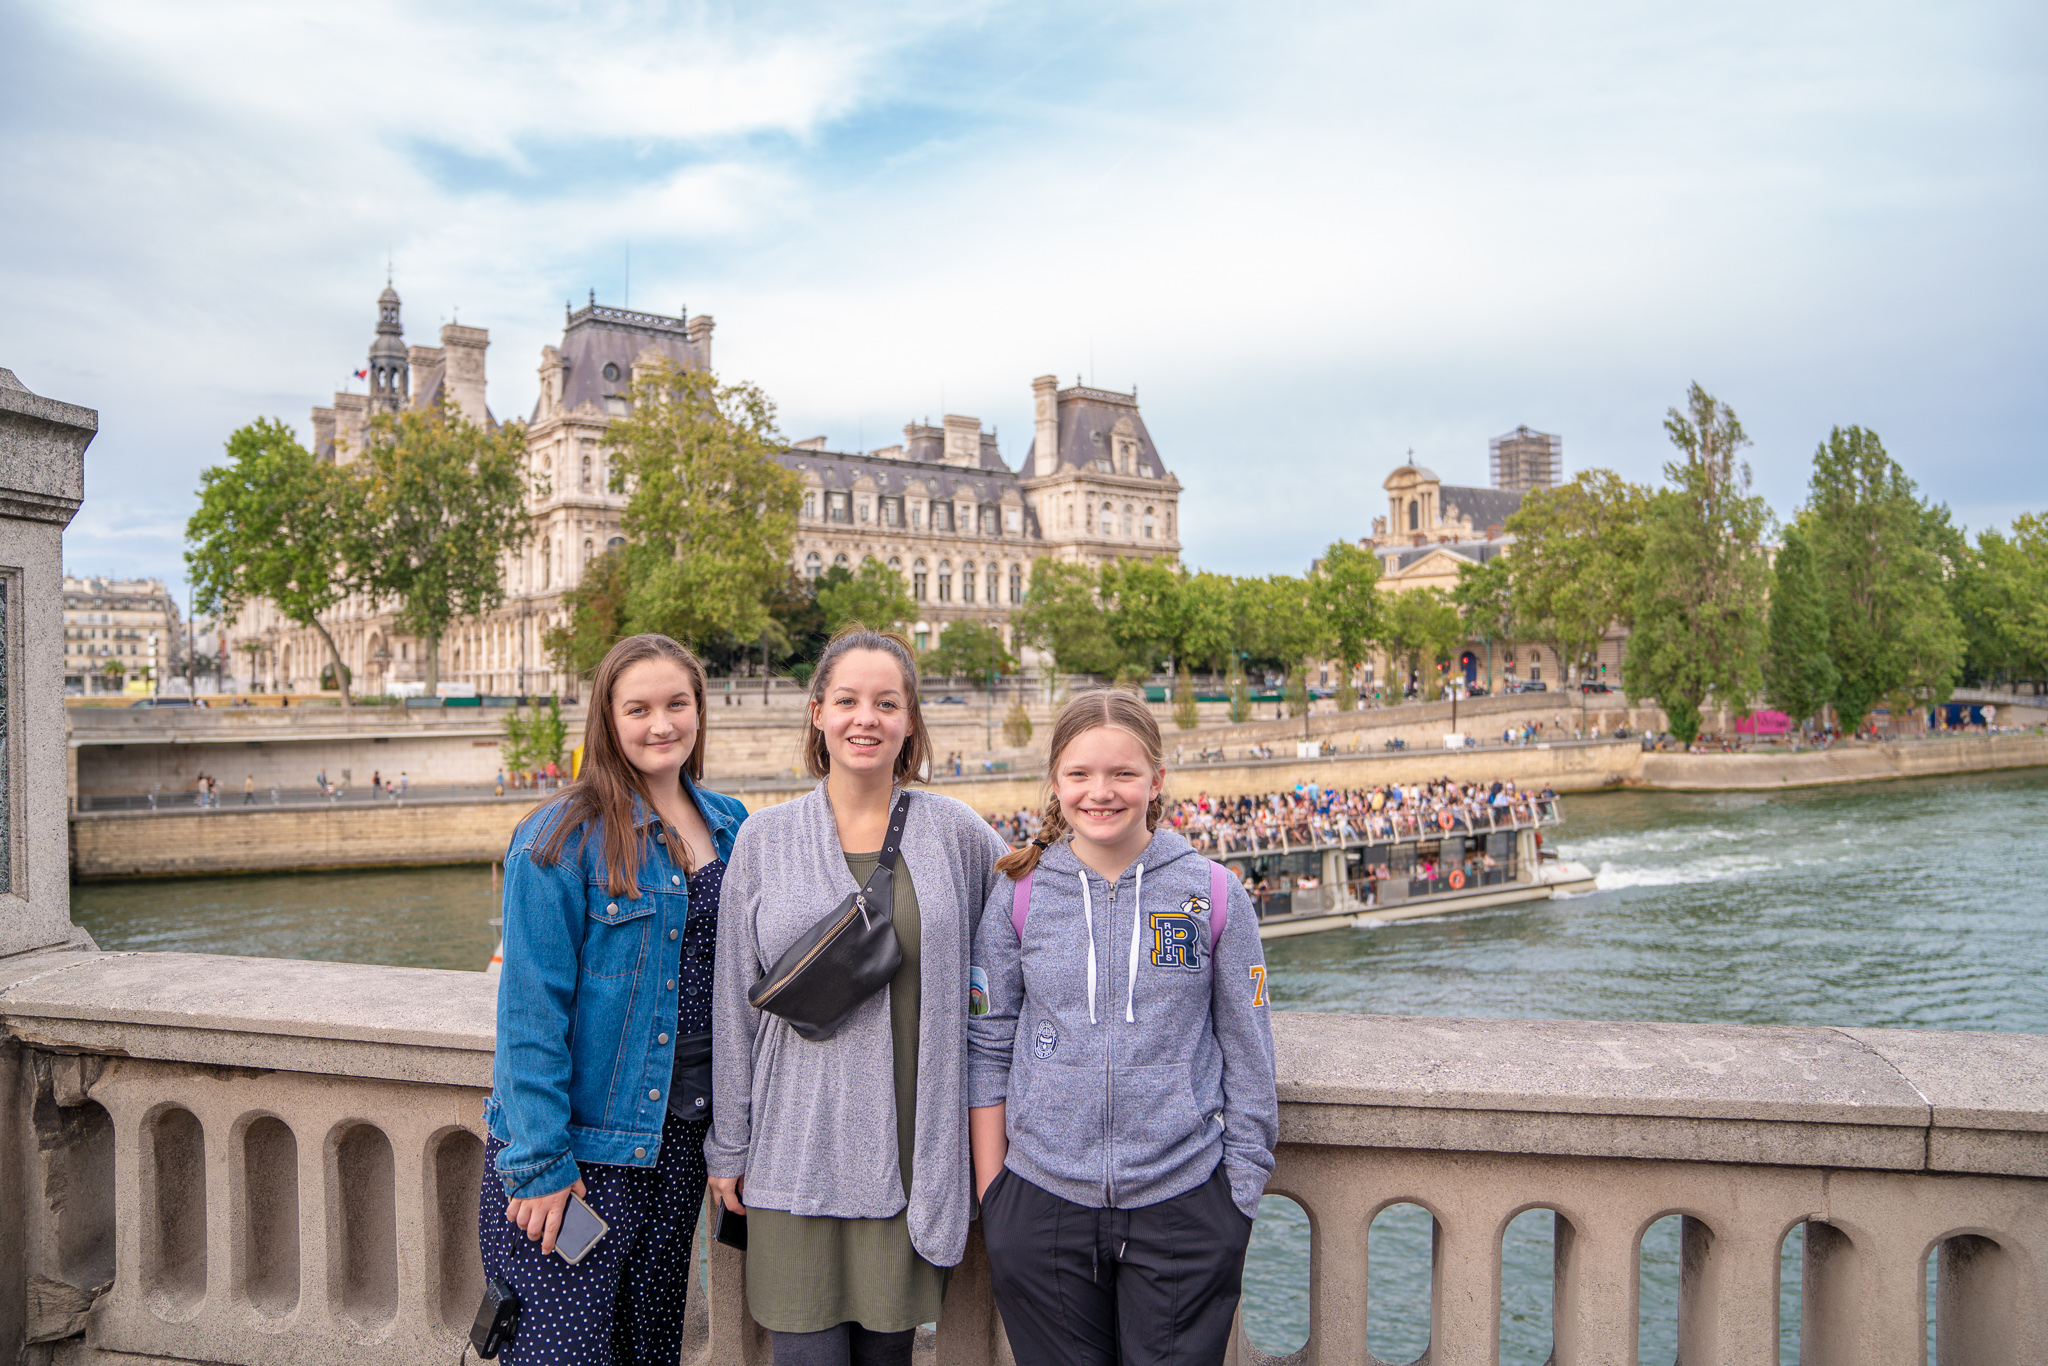 Three girls standing on a bridge over the Seine river in Paris, France